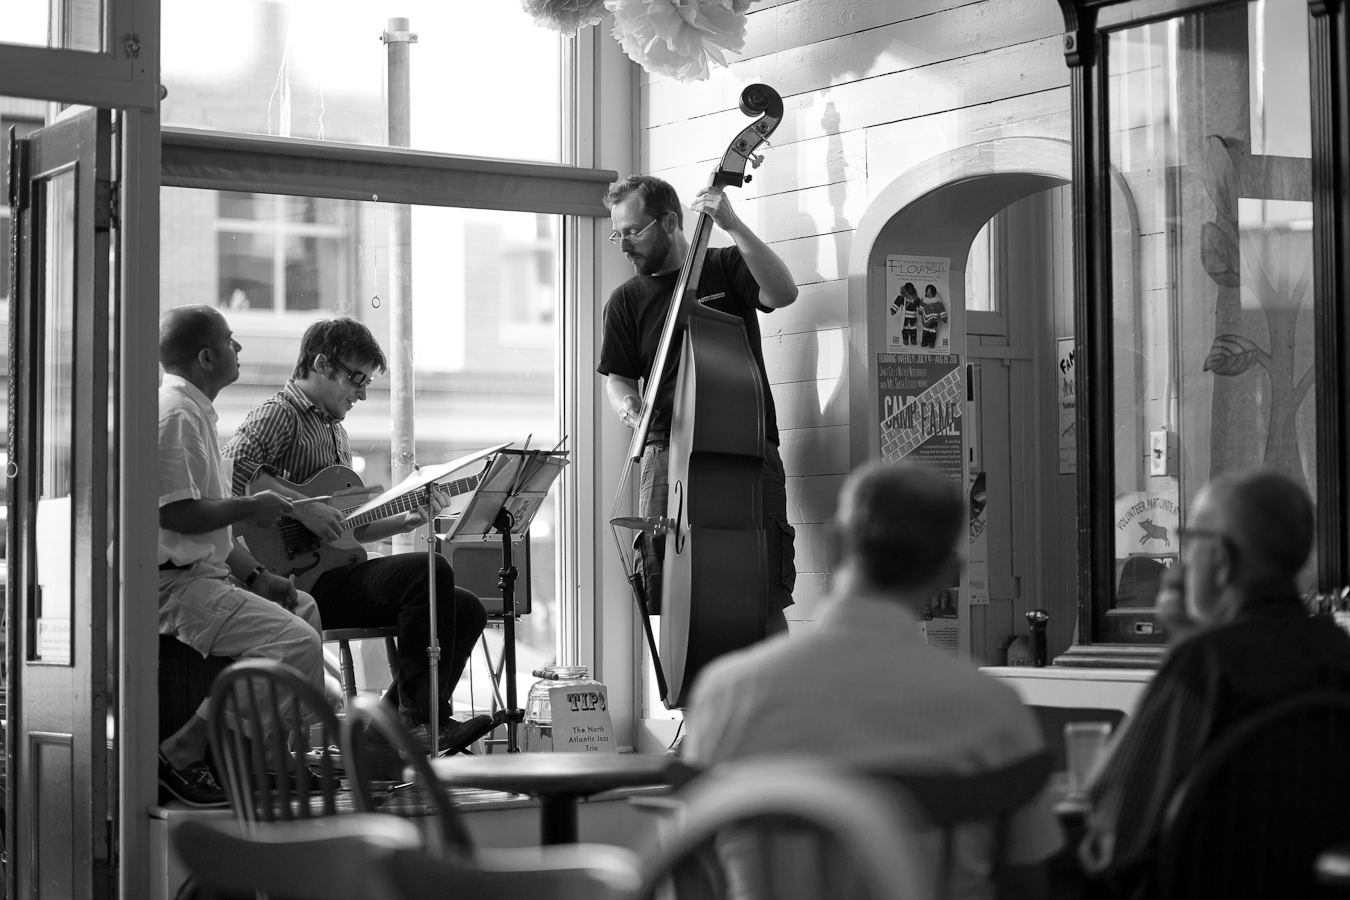 Atlantic Jazz Trio  shot by D. EDWARDS for A City Like Ours